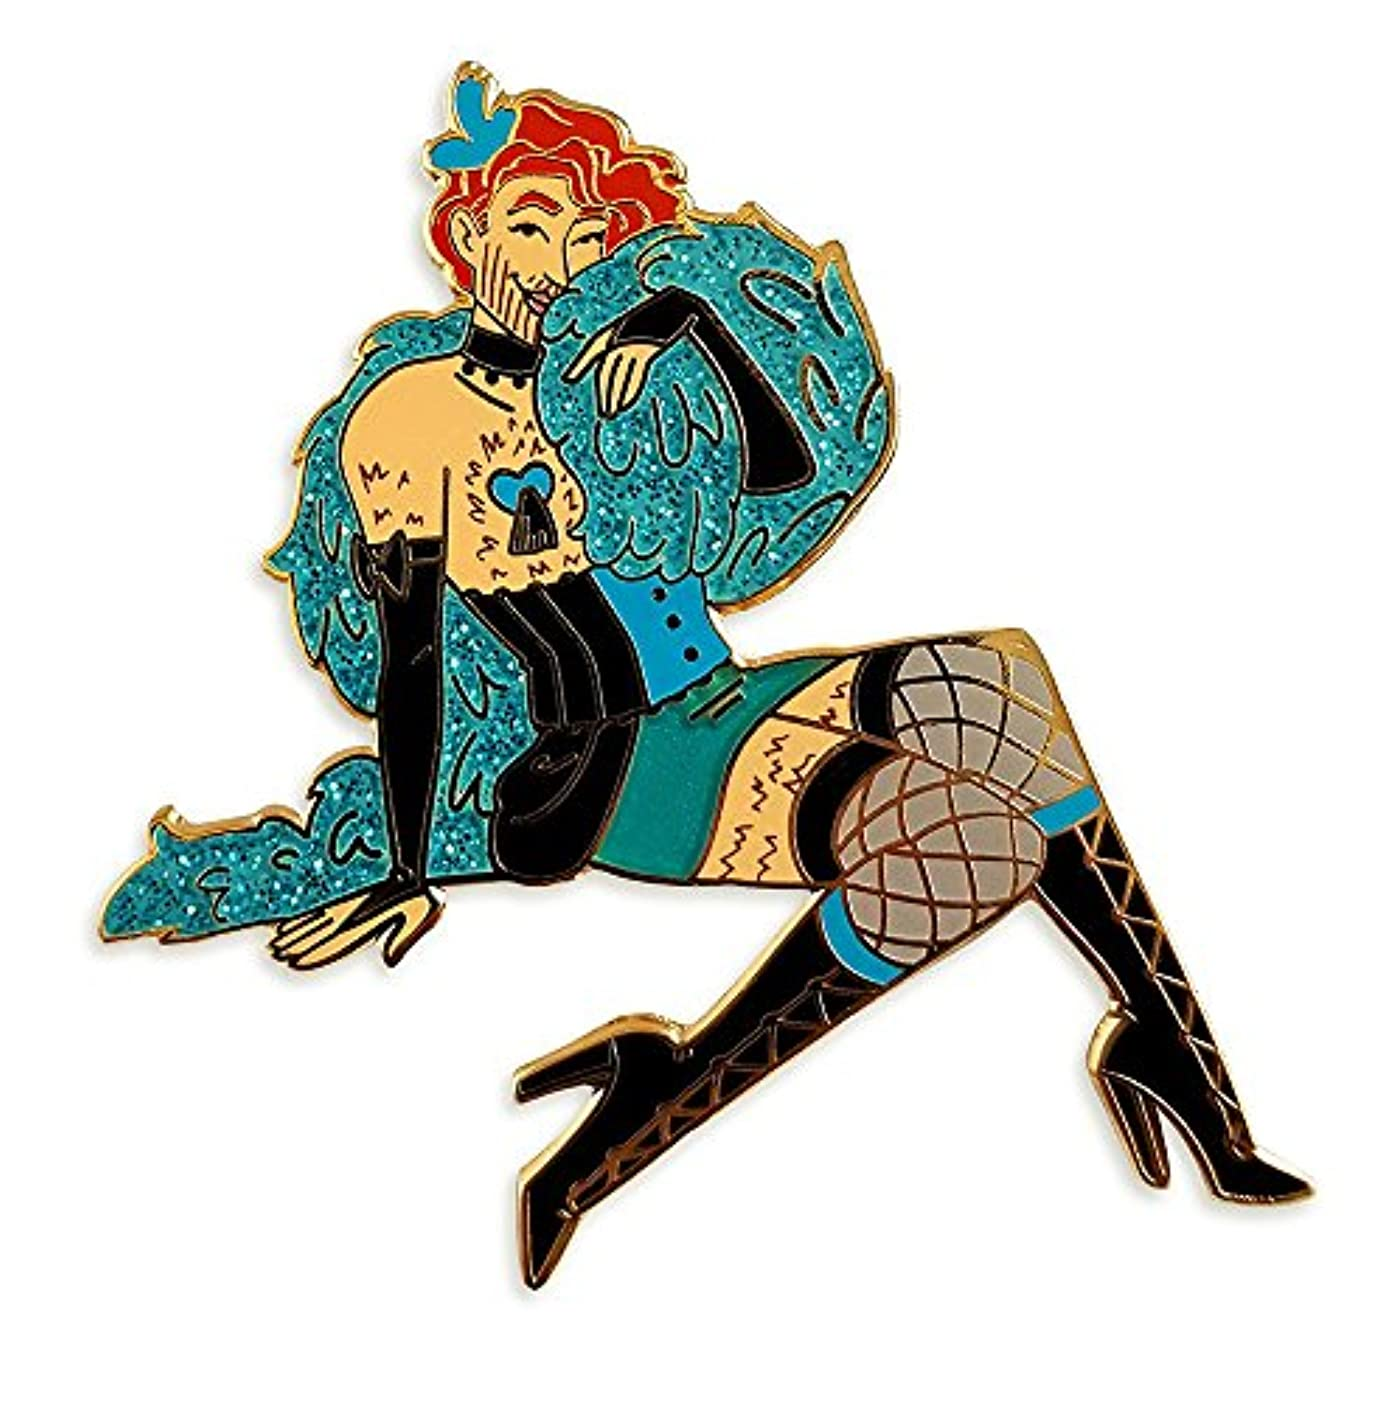 Pinsanity Burlesque Pin Up Boy Enamel Lapel Pin